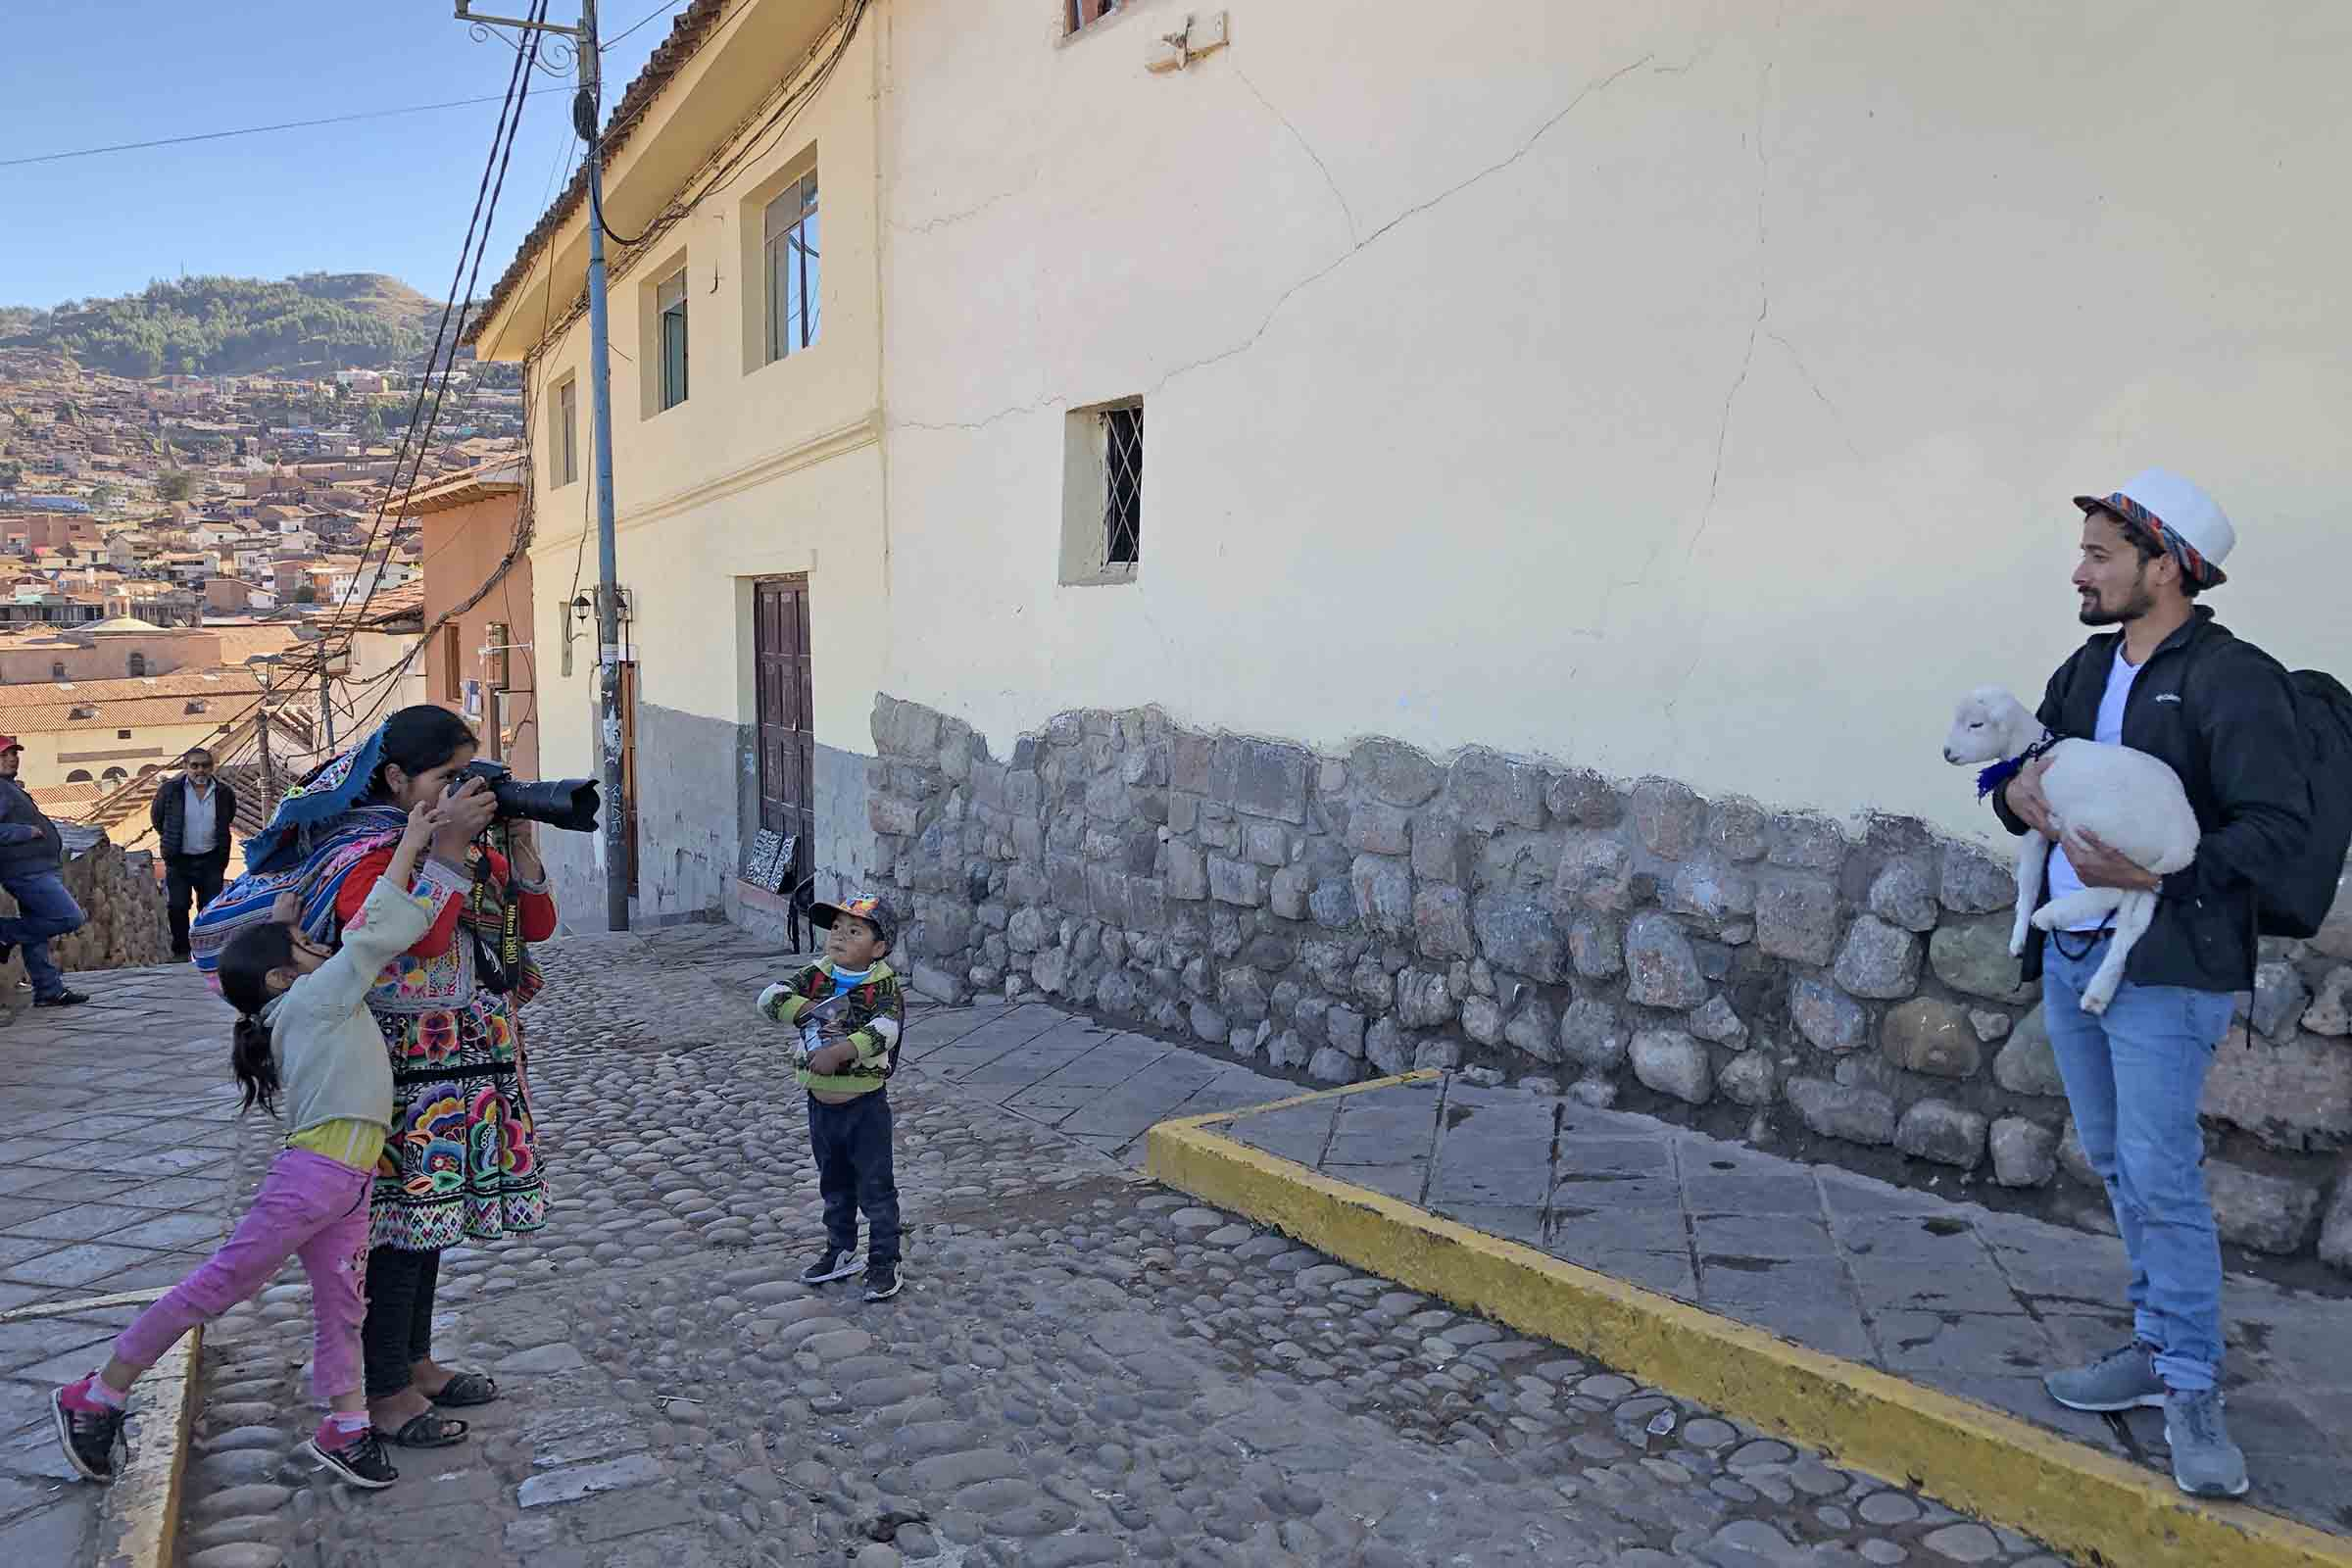 jimmy-nelson-foundation-peru-quechua-behind-the-scenes-gallery-35